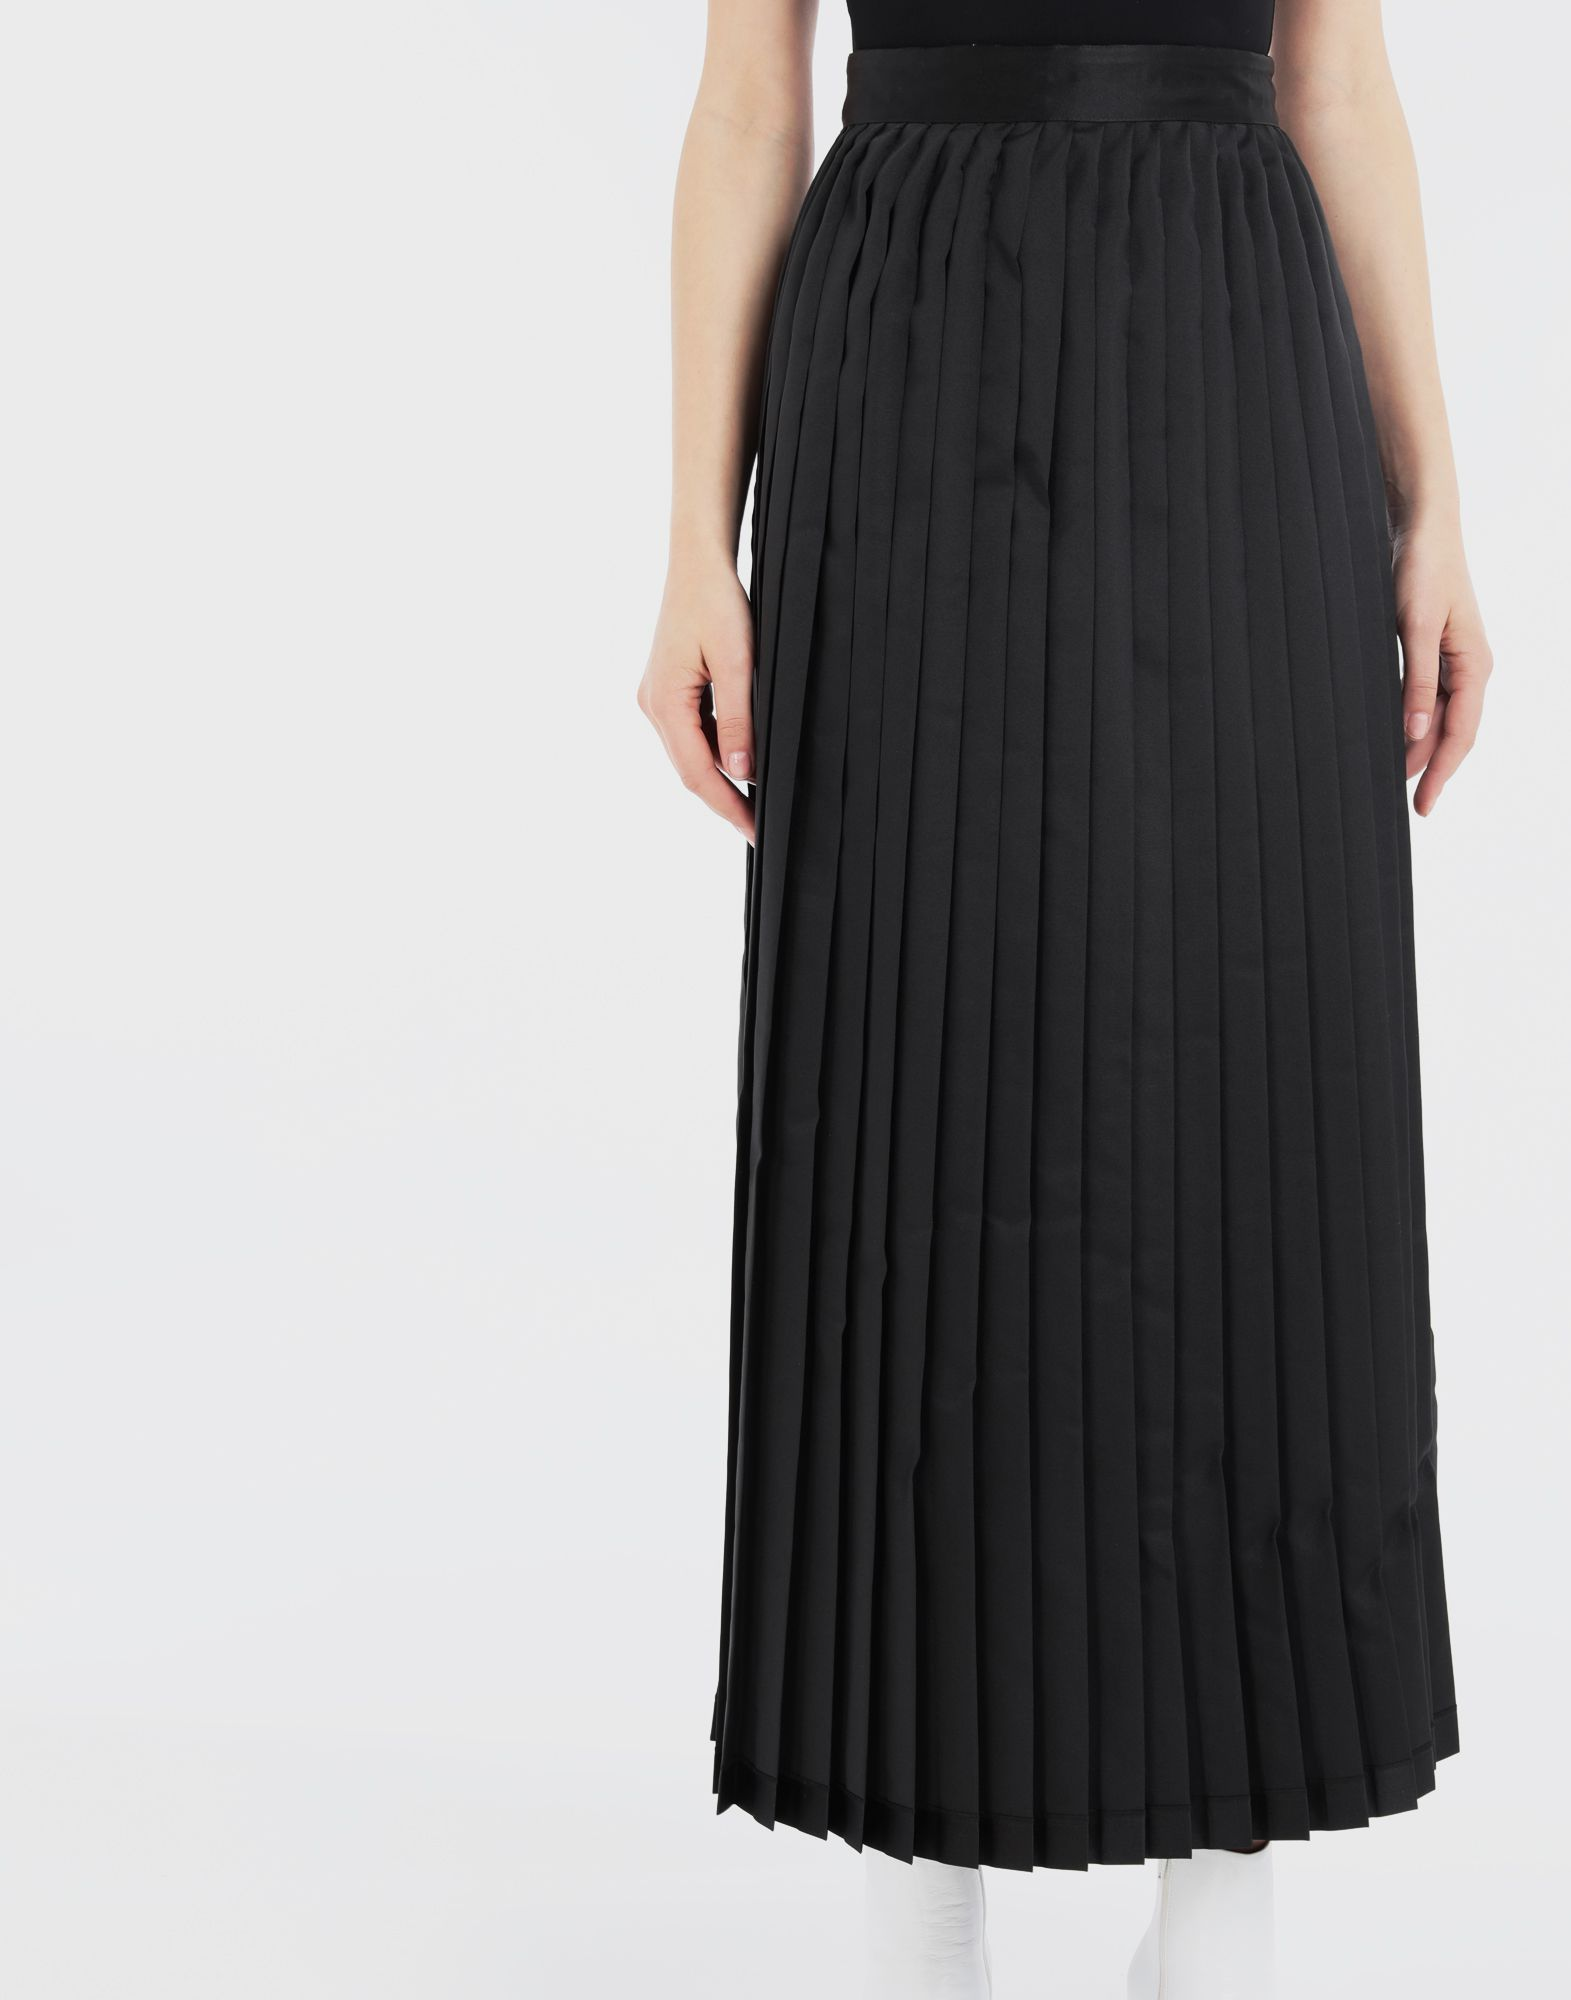 MM6 MAISON MARGIELA Charity AIDS-print pleated skirt  Long skirt Woman b